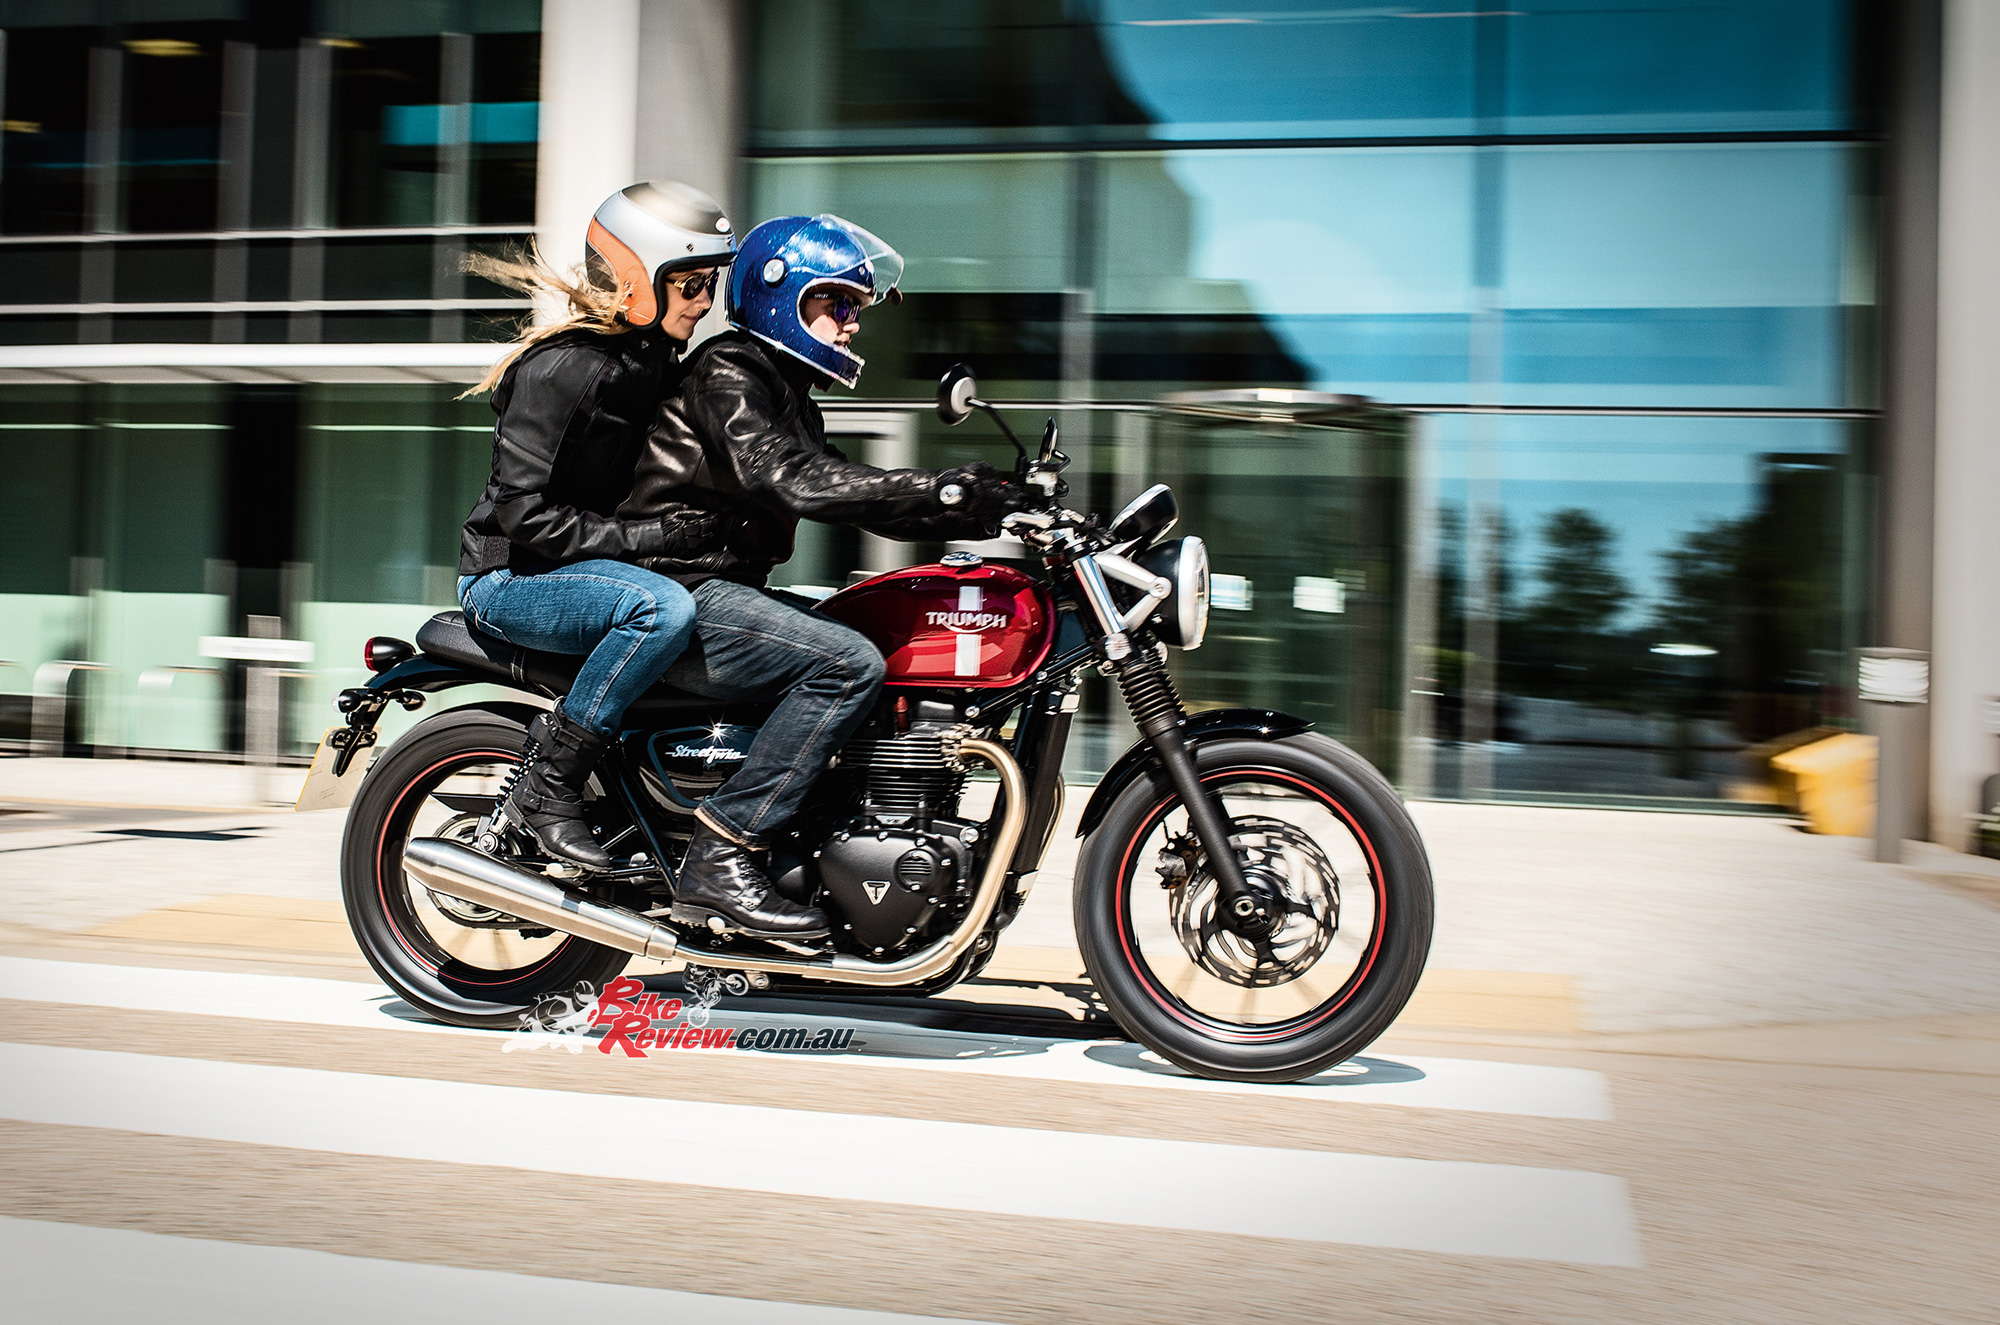 Triumphs New Thruxton R To Preview At Island Classic likewise Kawasaki Klr650 Scrambler furthermore All New Triumph Thruxton R Launched At Rs 10 9 Lakh as well Versys 650 M555 as well 2016. on triumph bonneville engine